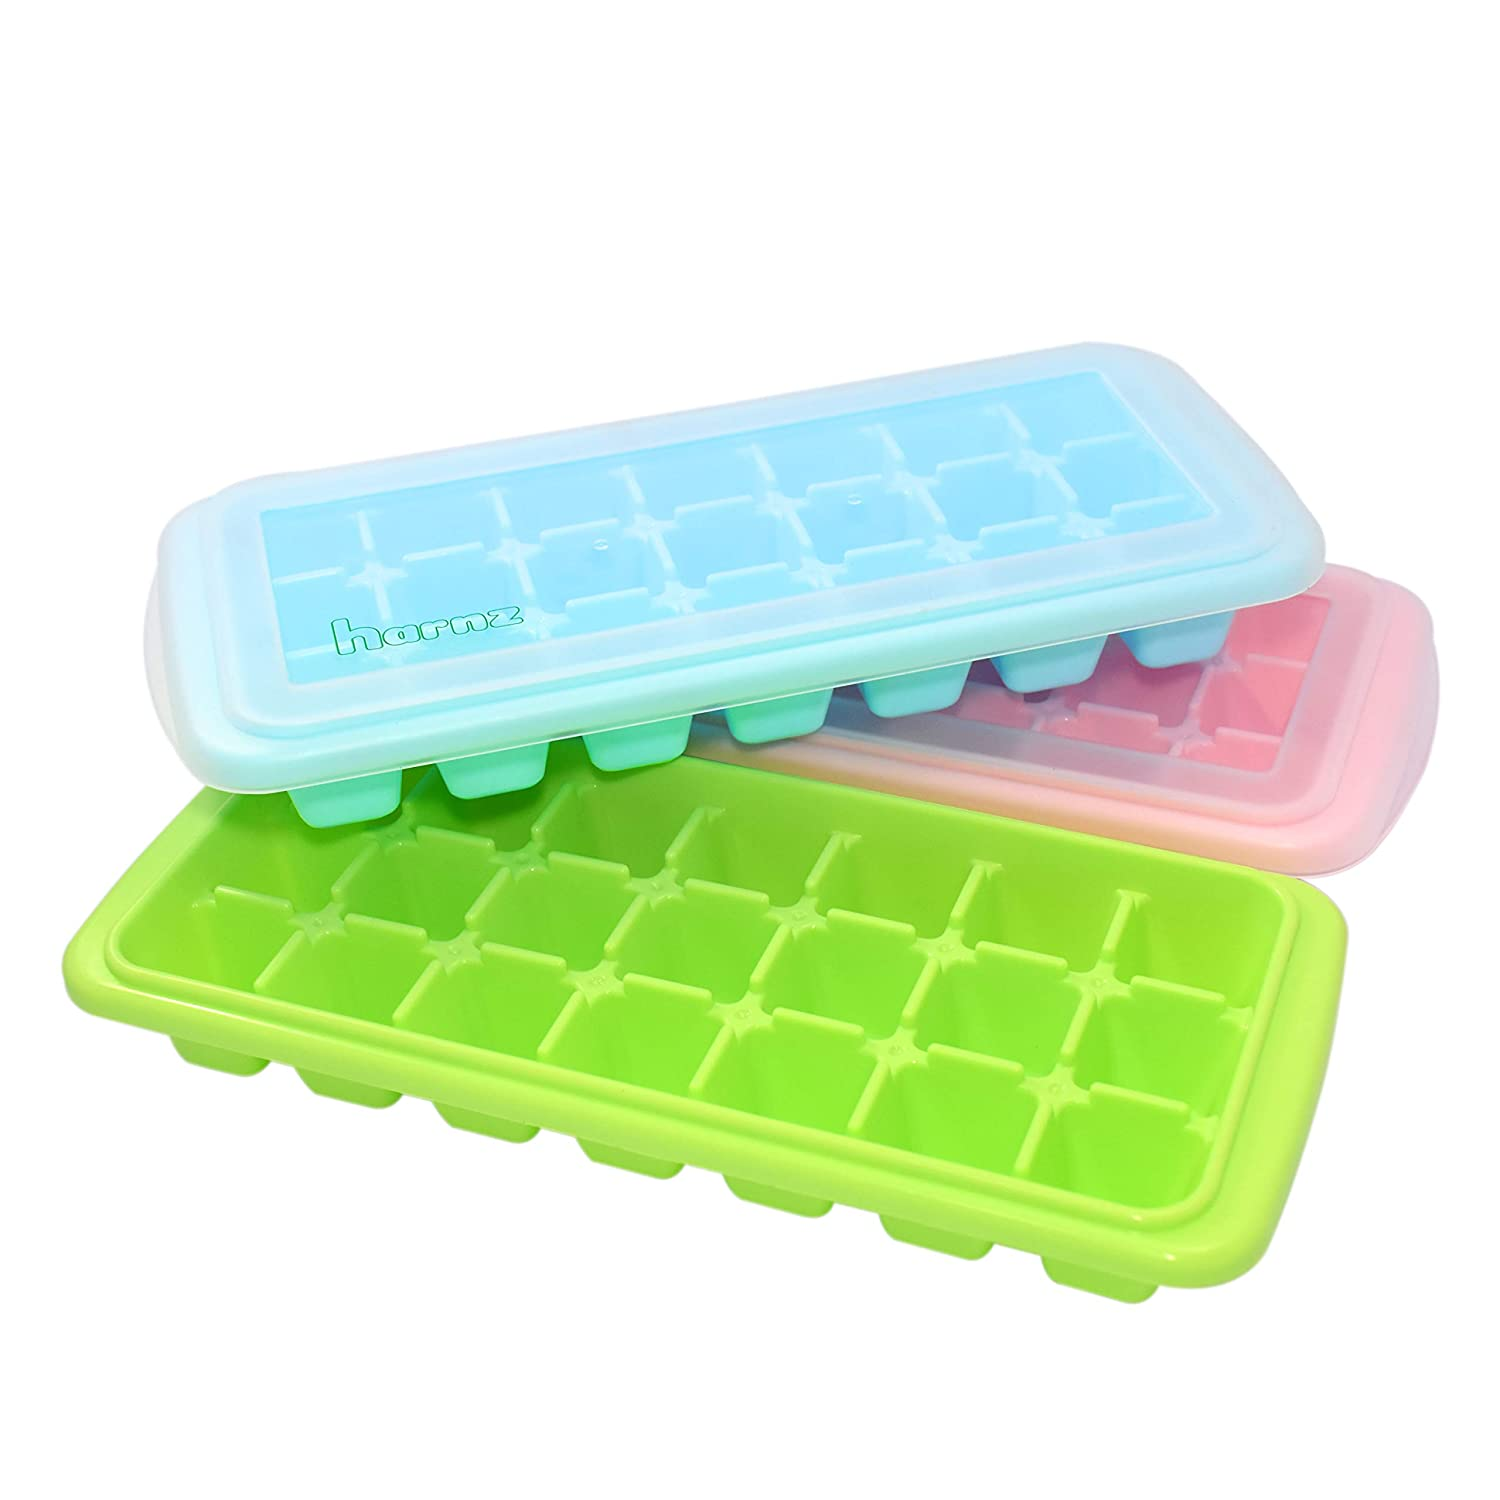 Food Grade Stackable Ice Cube Trays with Lids | BPA Free, Dish Washer Safe and Odorless | Easy Release and Durable | Pack of 3 color molds (lime, peach, azure) each with 21 Cubicles